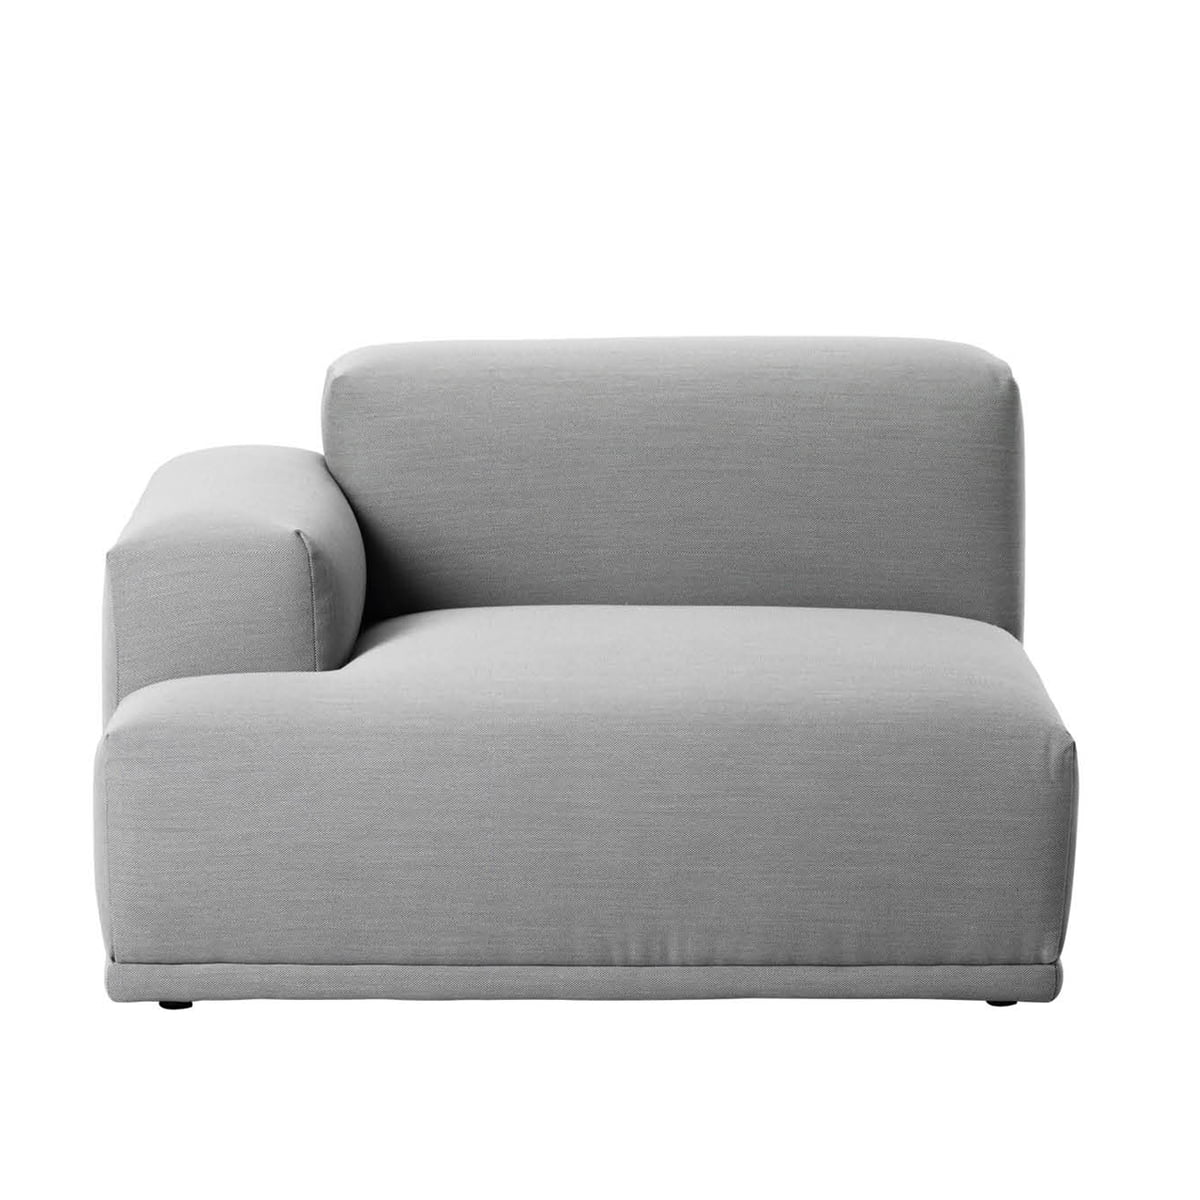 Muuto Connect Sofa Corner Right Armrest Remix 123